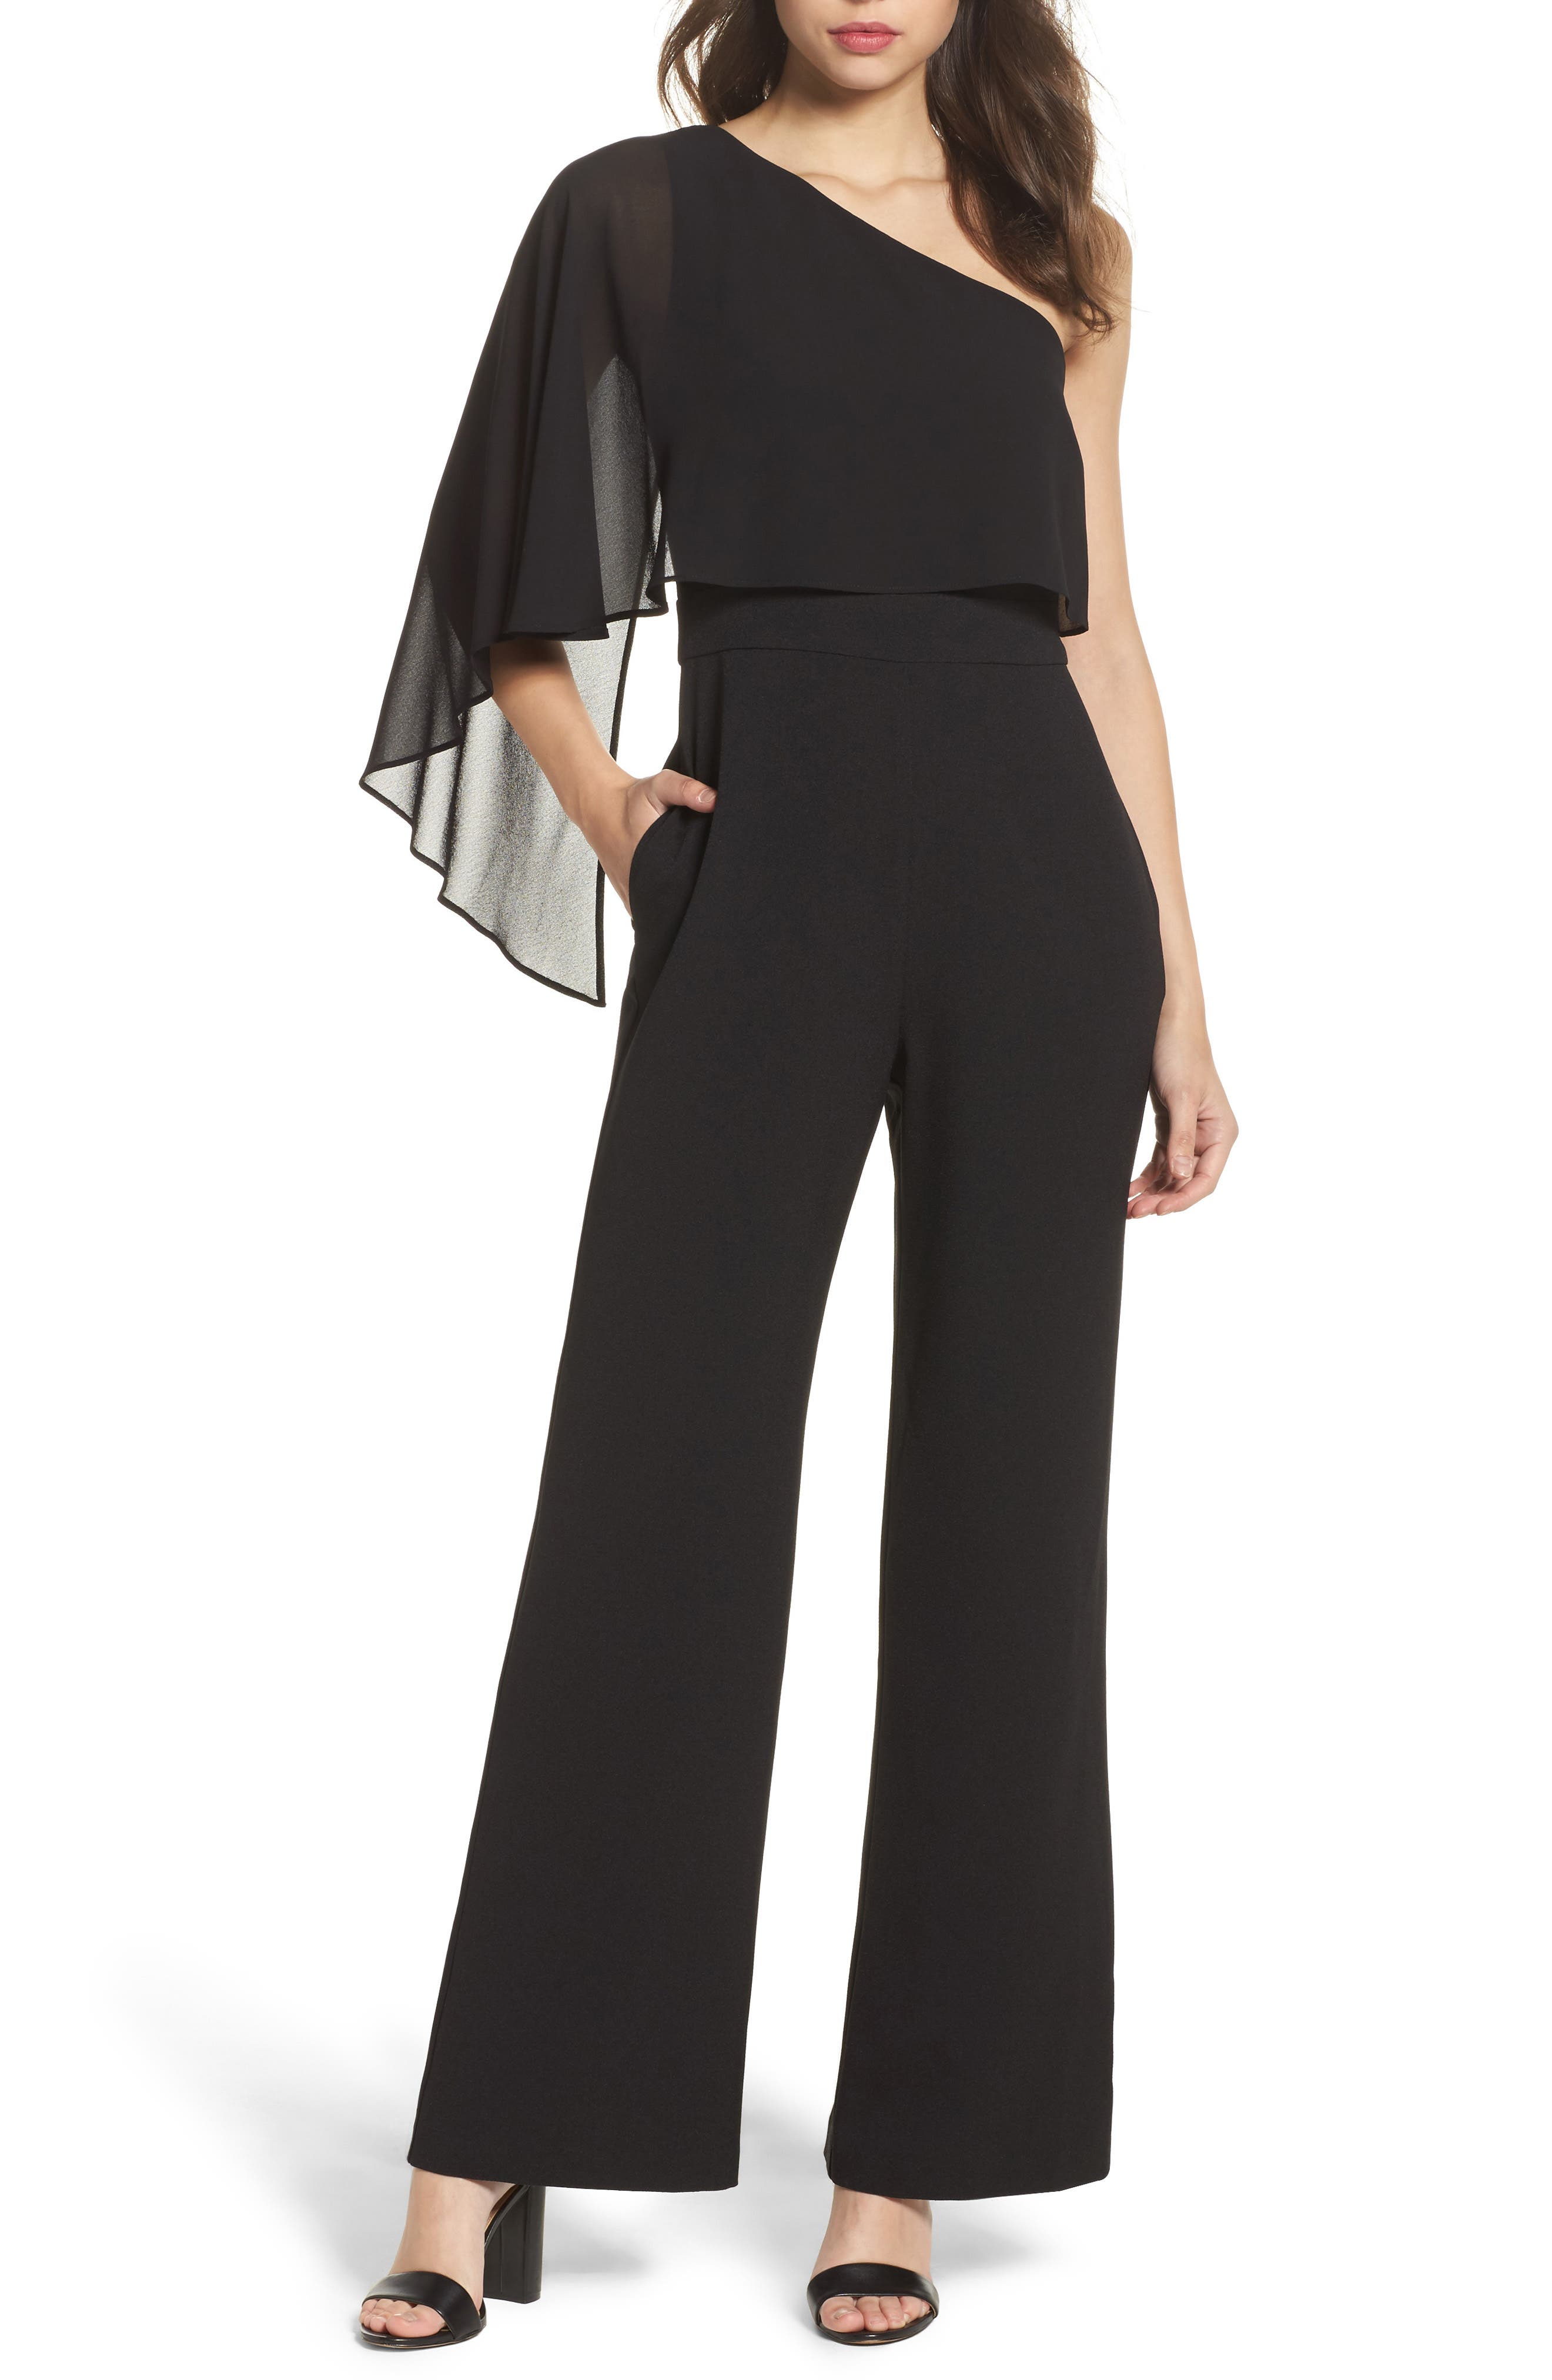 Main Image - Vince Camuto Cape Overlay One-Shoulder Jumpsuit